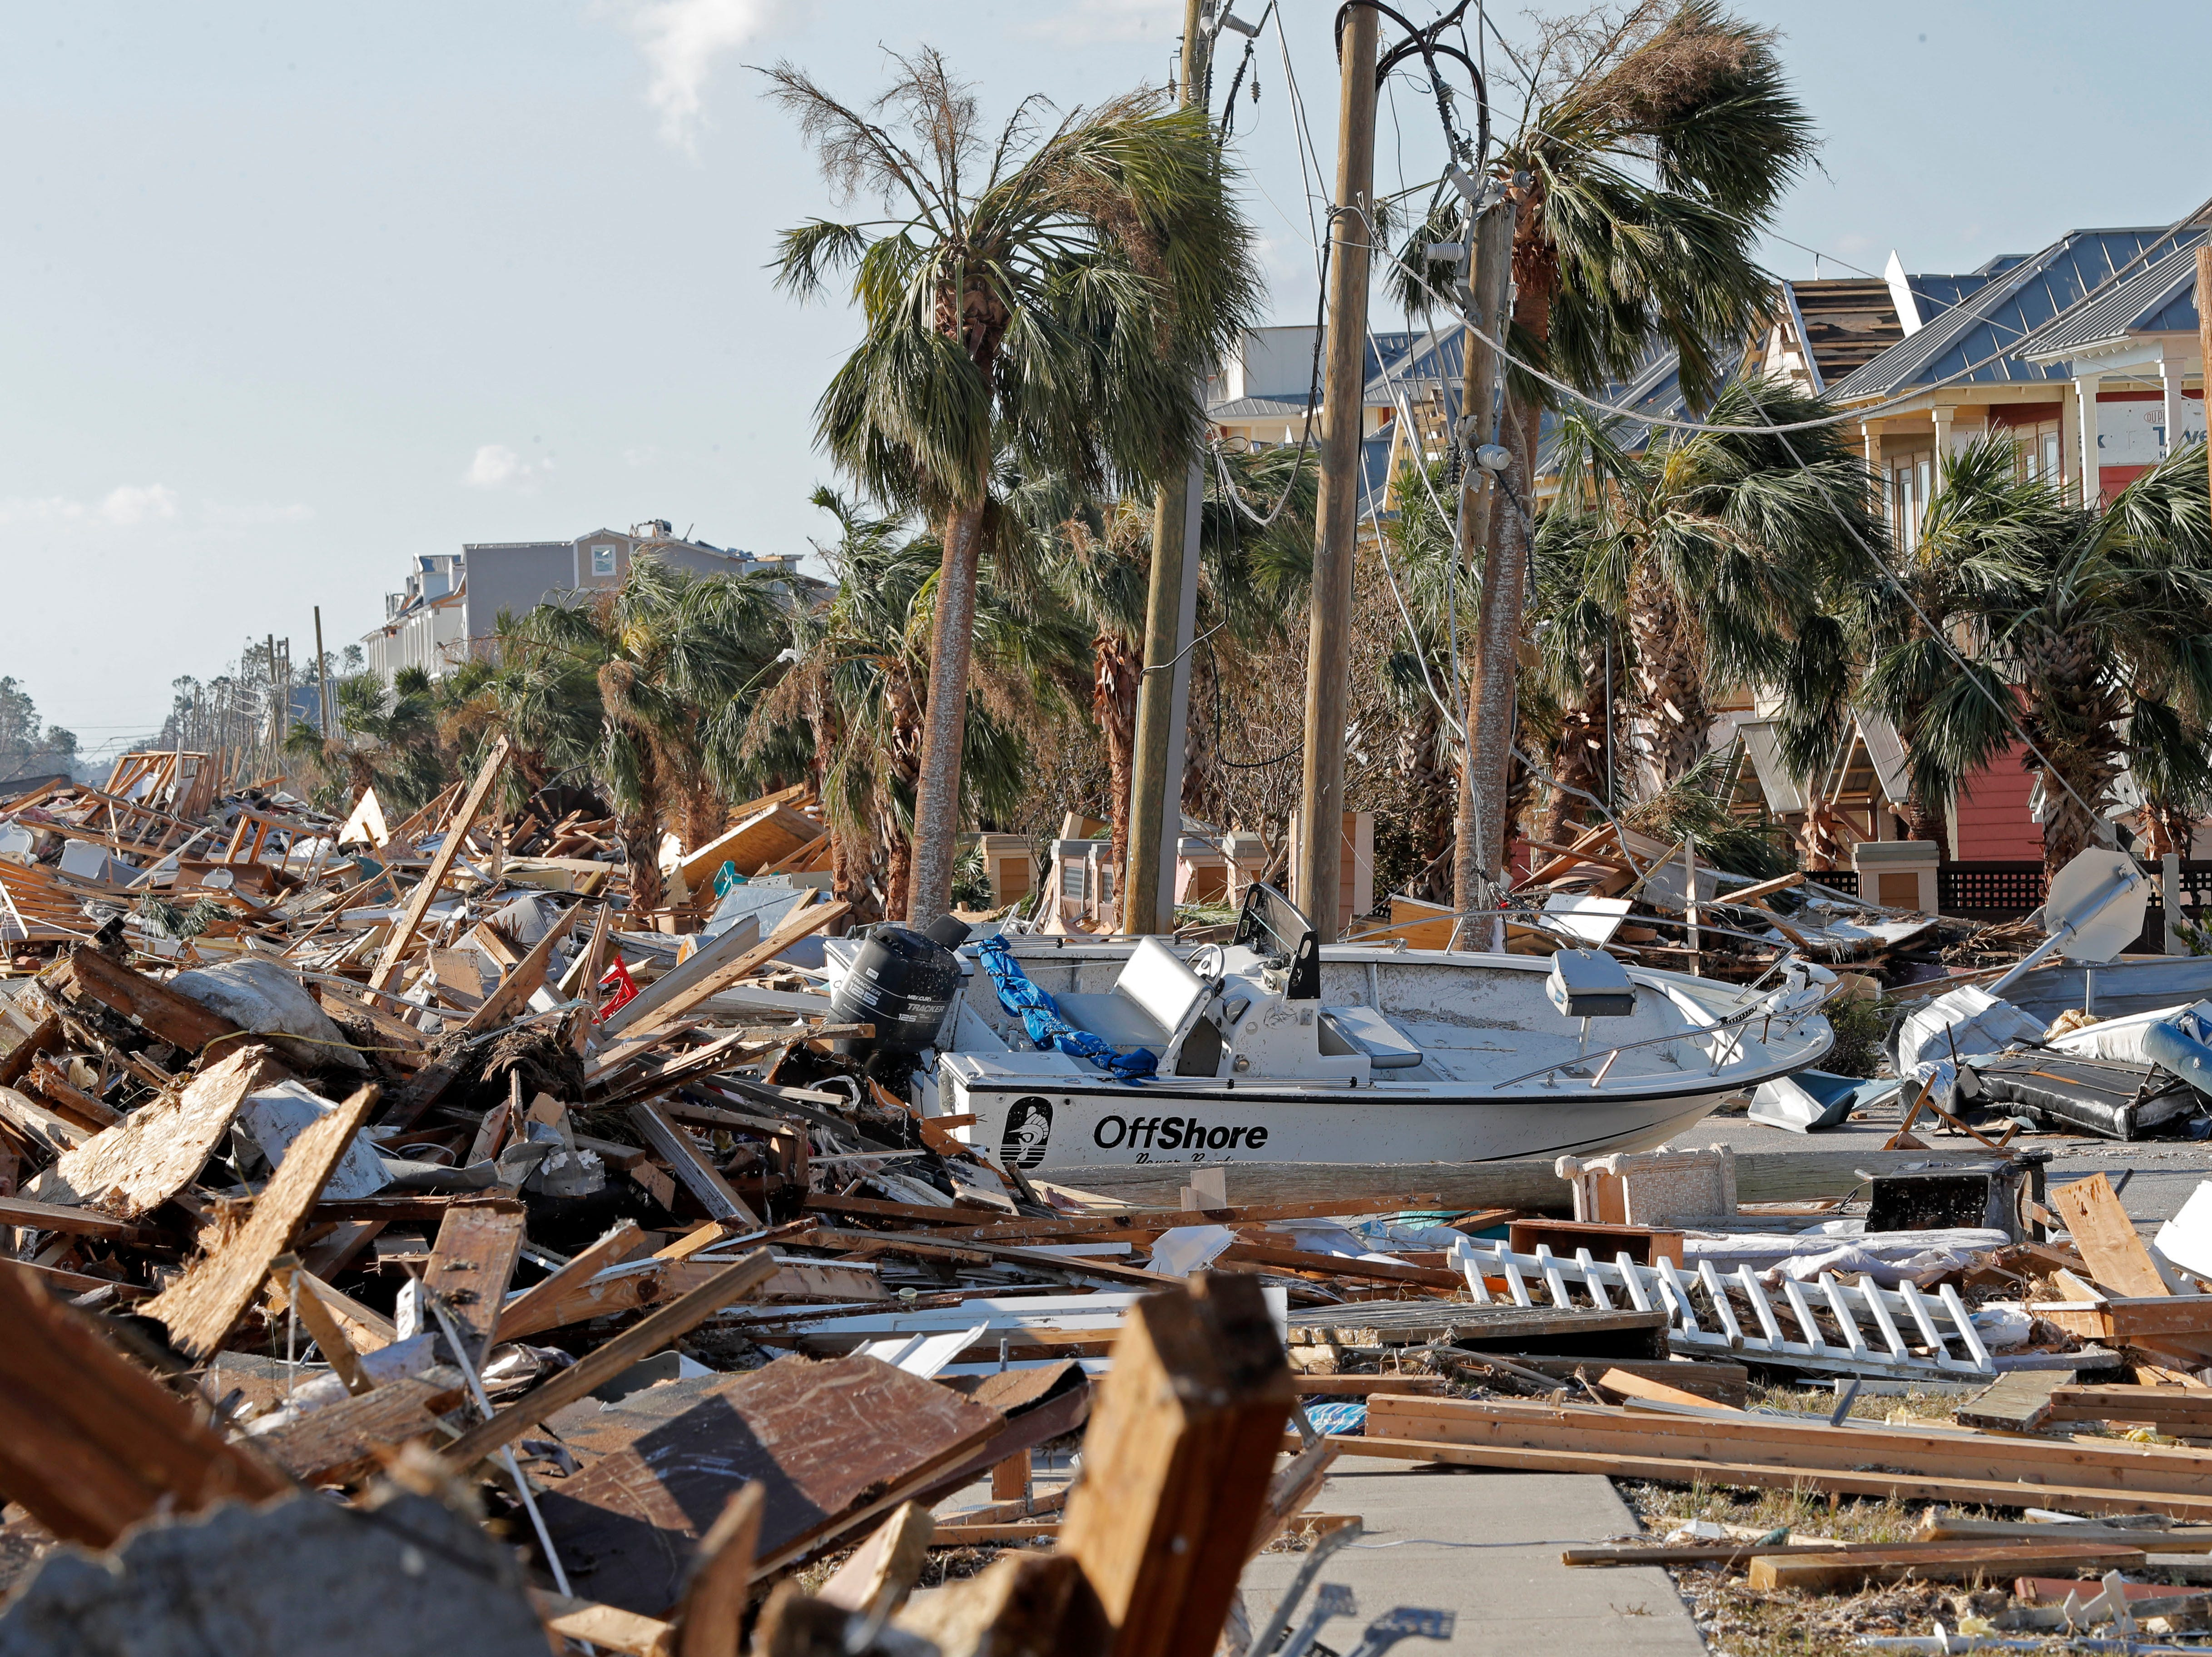 Destruction is seen in the aftermath of Hurricane Michael in Mexico Beach, Fla., Thursday, Oct. 11, 2018. The devastation inflicted by Hurricane Michael came into focus Thursday with rows upon rows of homes found smashed to pieces, and rescue crews began making their way into the stricken areas in hopes of accounting for hundreds of people who may have stayed behind. (AP Photo/Gerald Herbert)